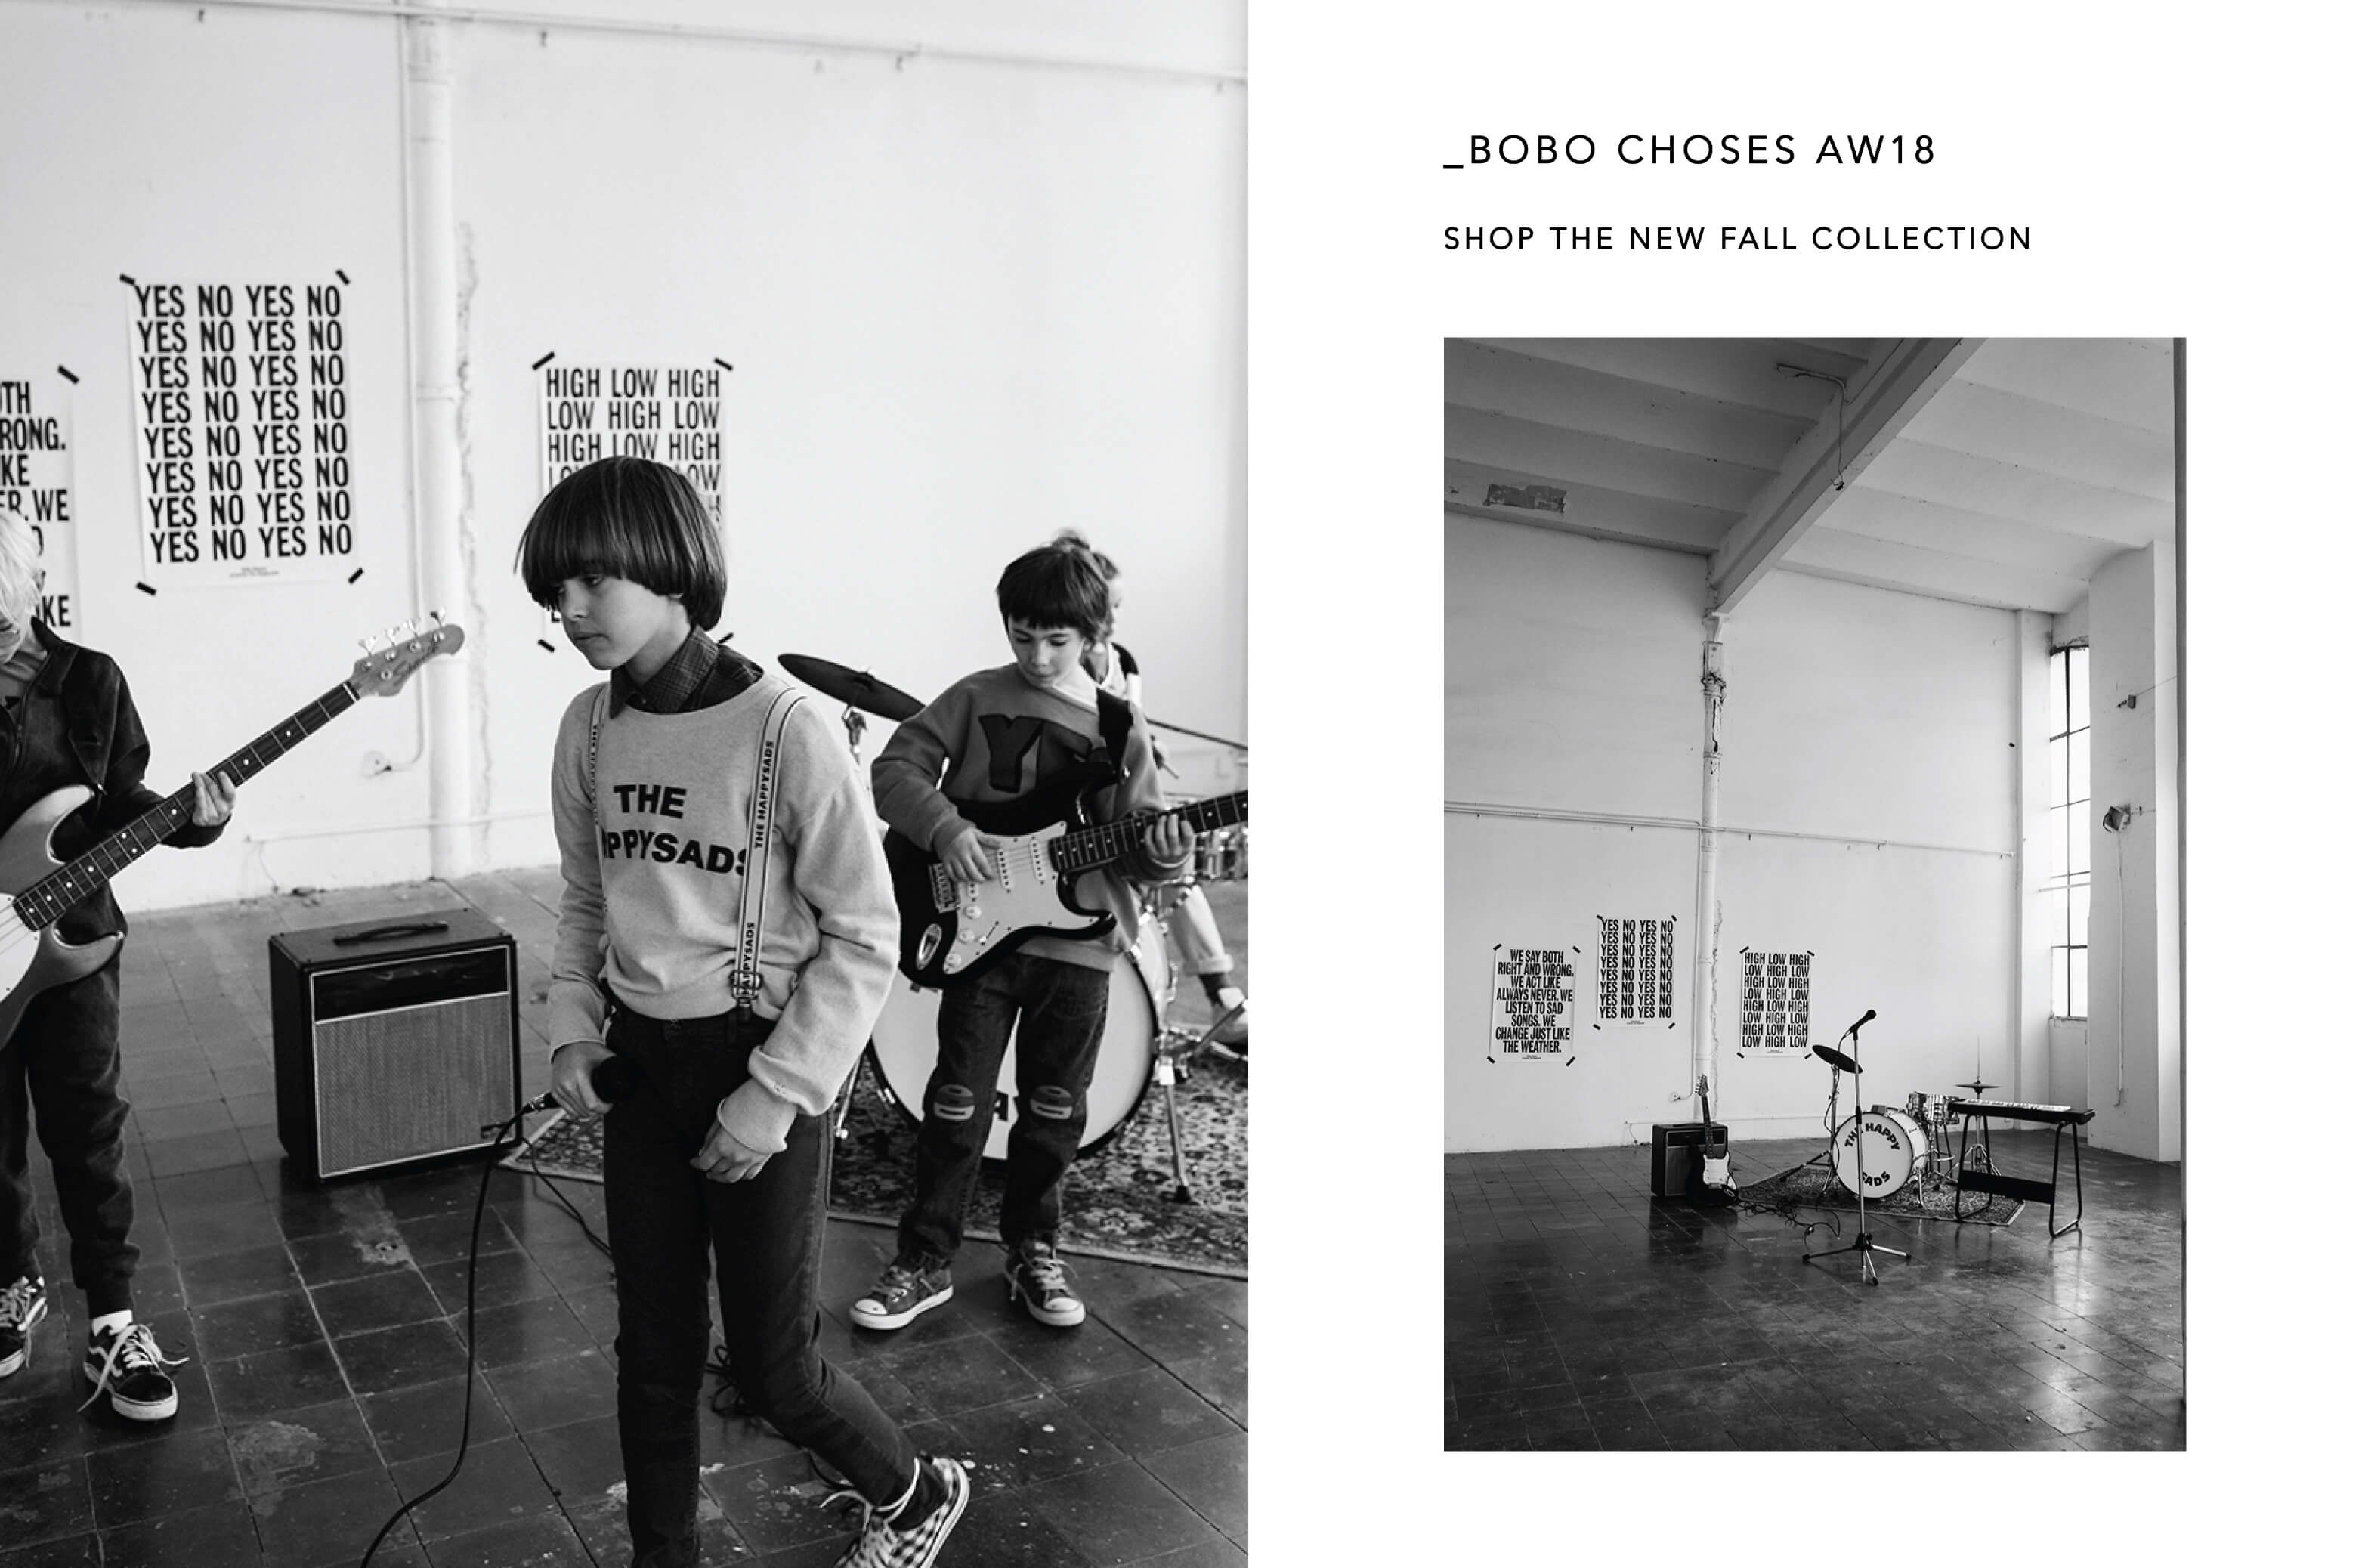 BOBO CHOSES AUTUMN/WINTER 2018 | BIEN BIEN